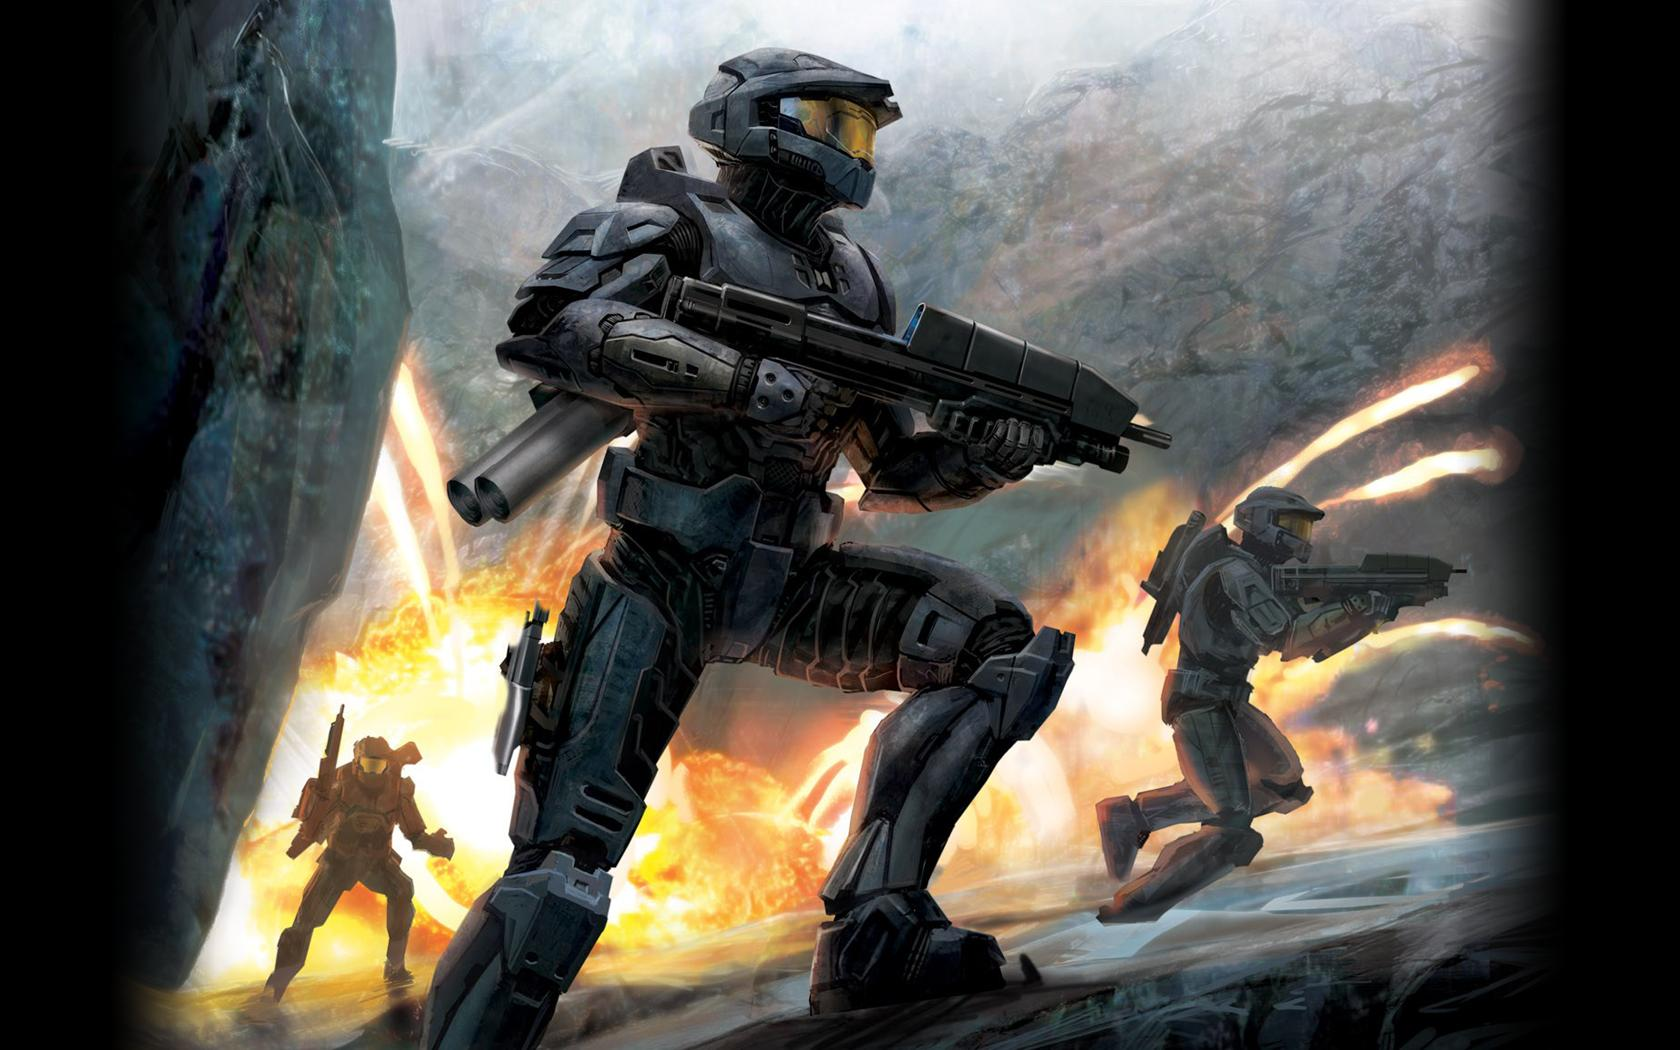 Halo Wallpaper Desktop Windows